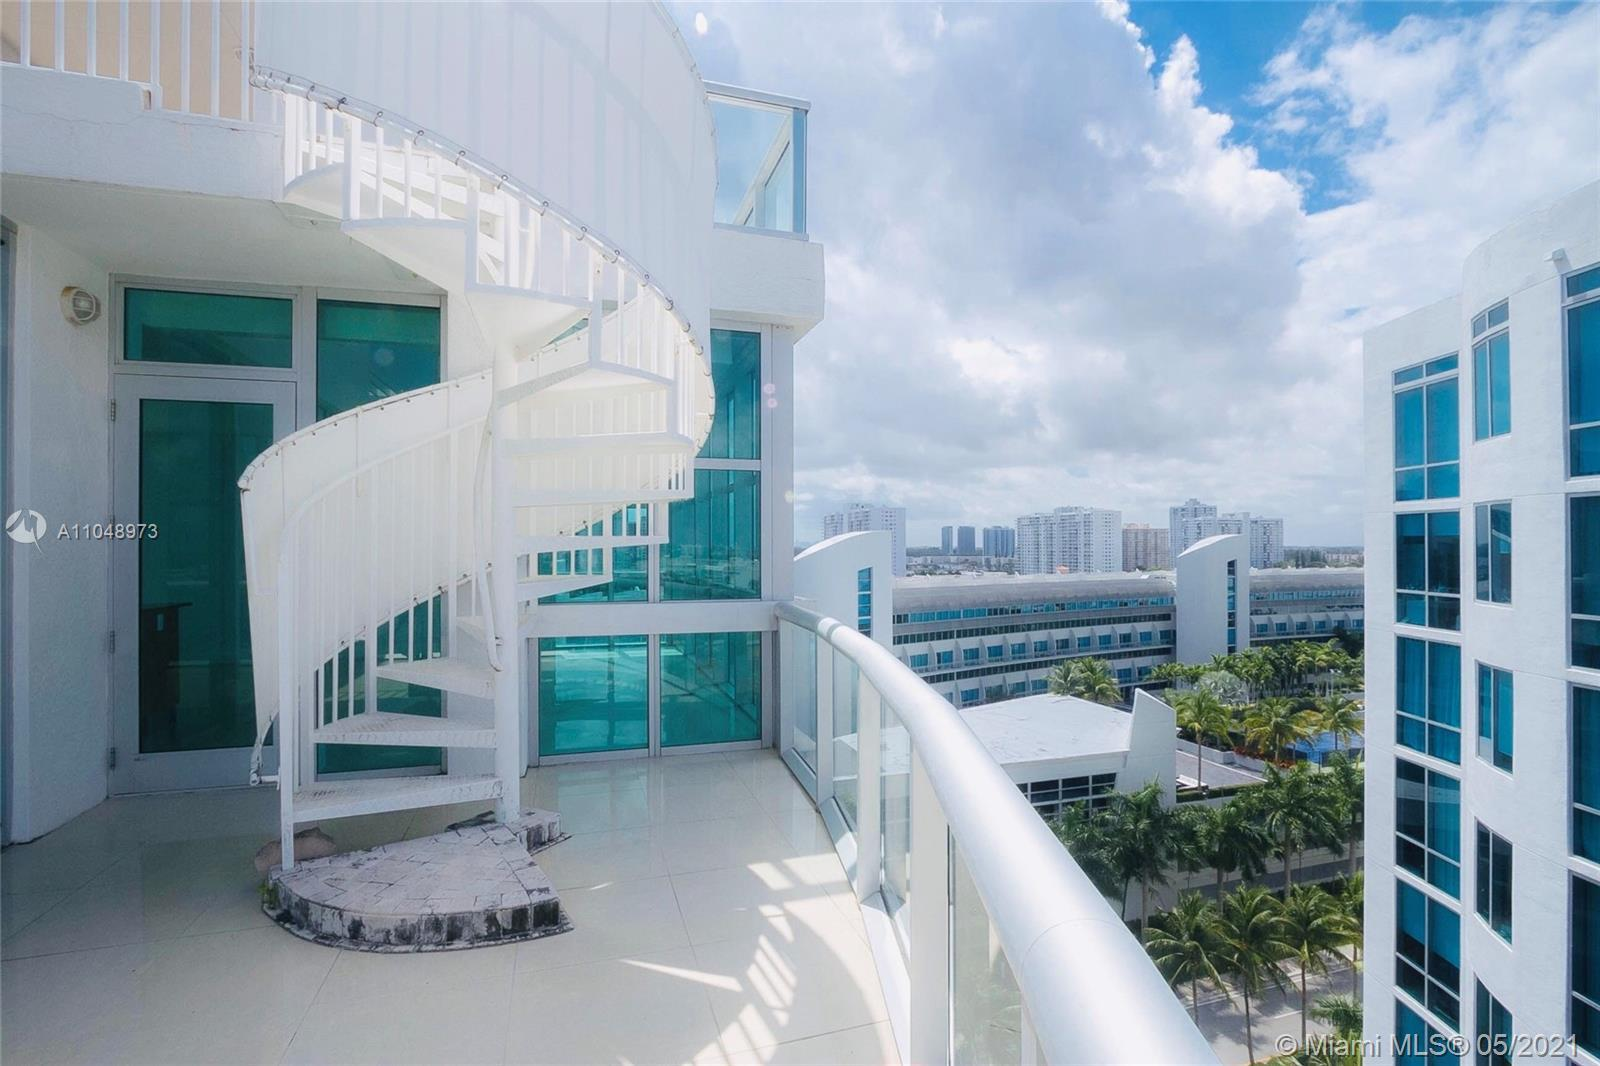 !!!INVESTOR OPPORTINITY to own rare to find unique spacious 3/2,5 PENTHOUSE WITH OWN ROOF TOP TERRAC